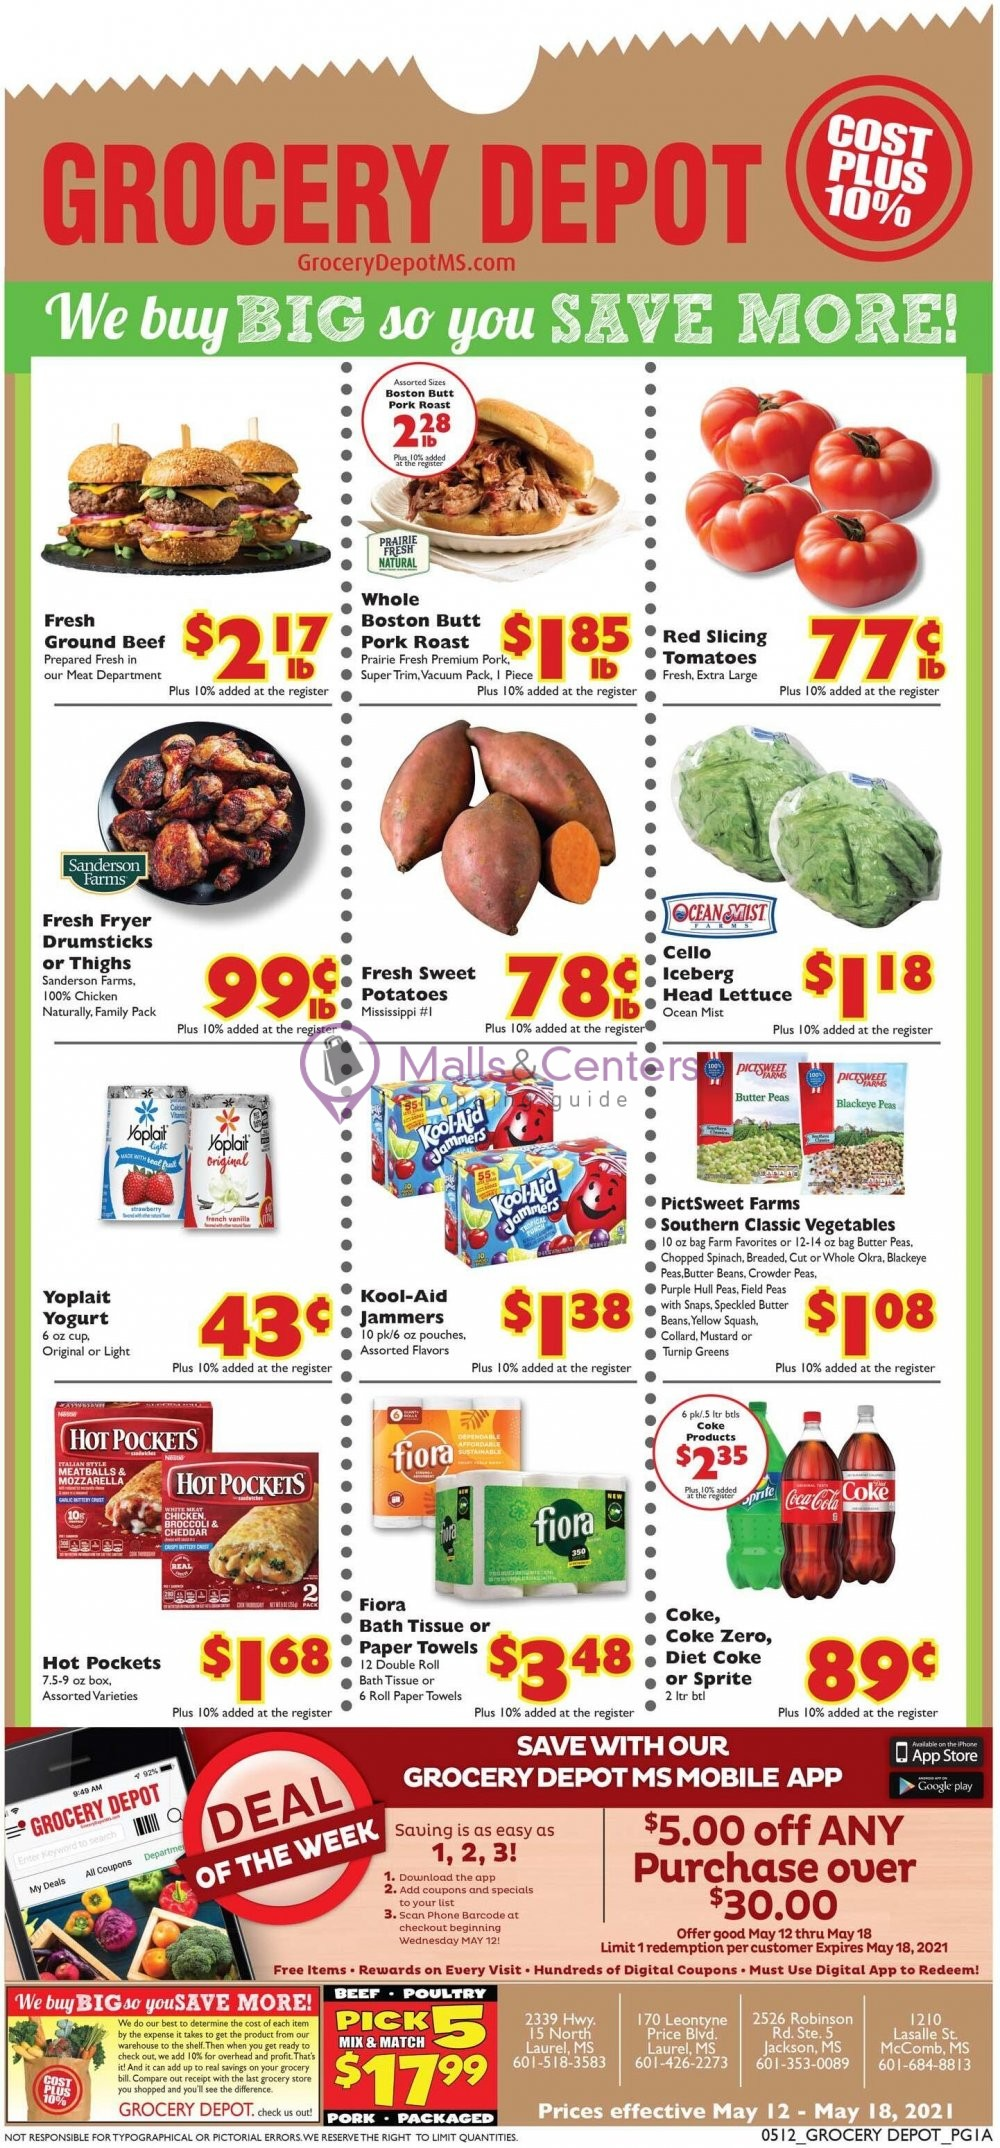 weekly ads Grocery Depot - page 1 - mallscenters.com